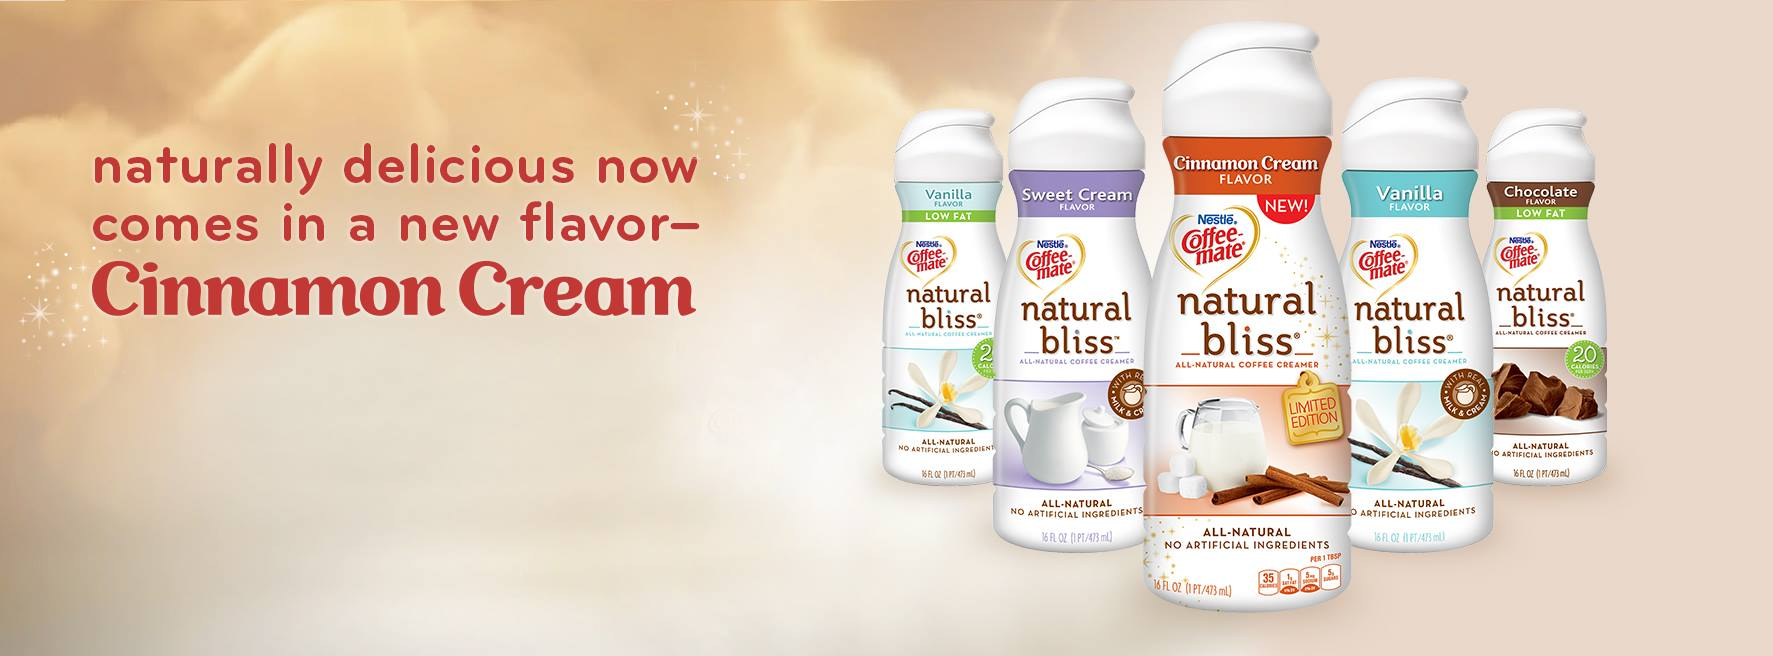 Cinnamon Cream Coffee-mate Natural Bliss